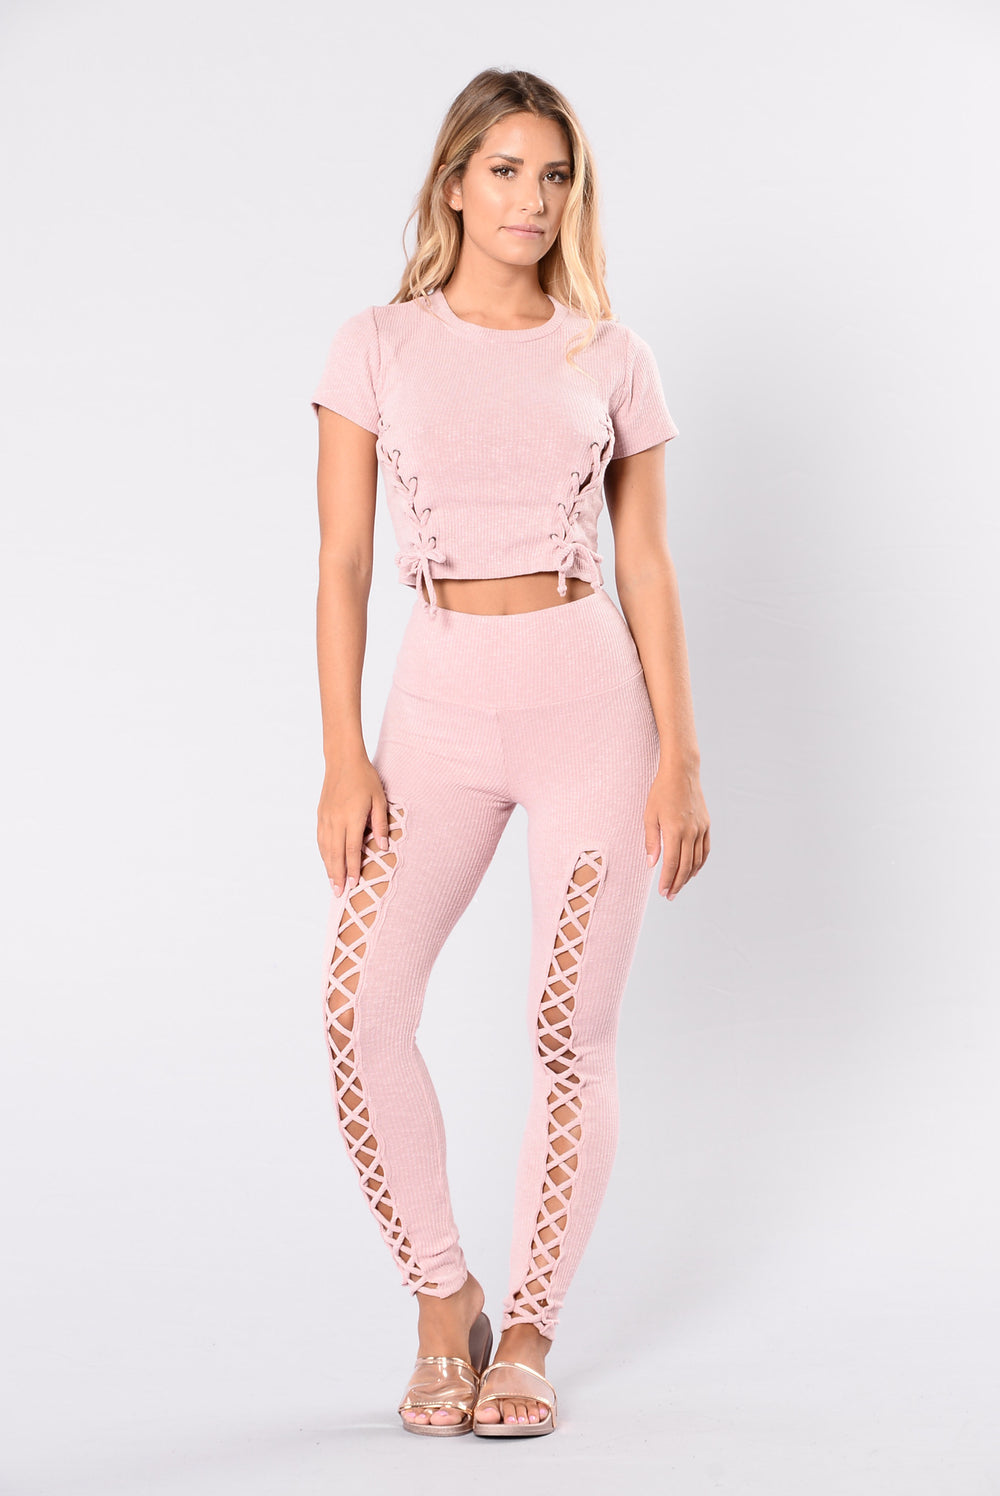 Lace leggings in rose pink color